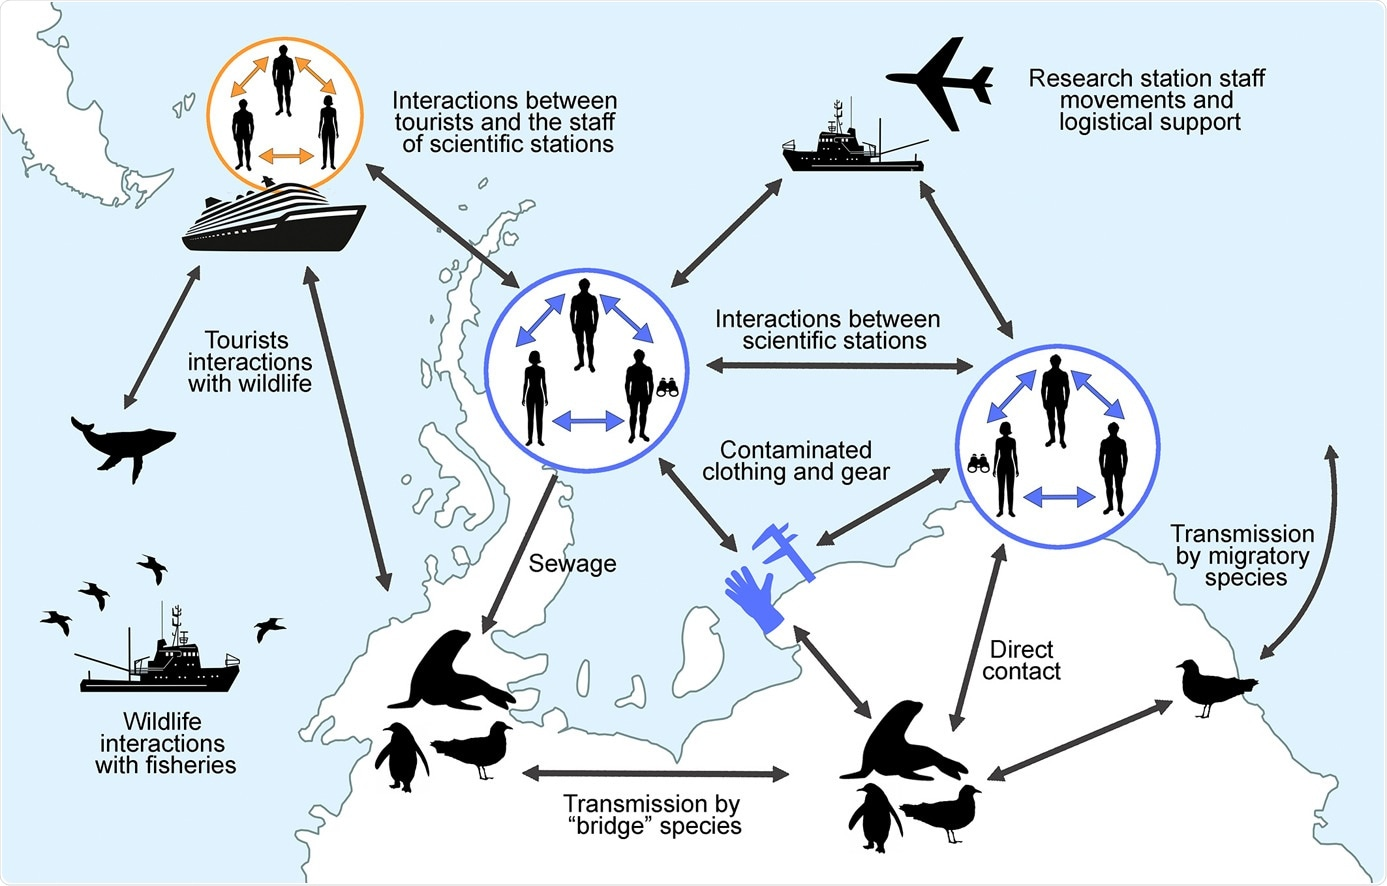 Study: Risk assessment of SARS-CoV-2 in Antarctic wildlife.